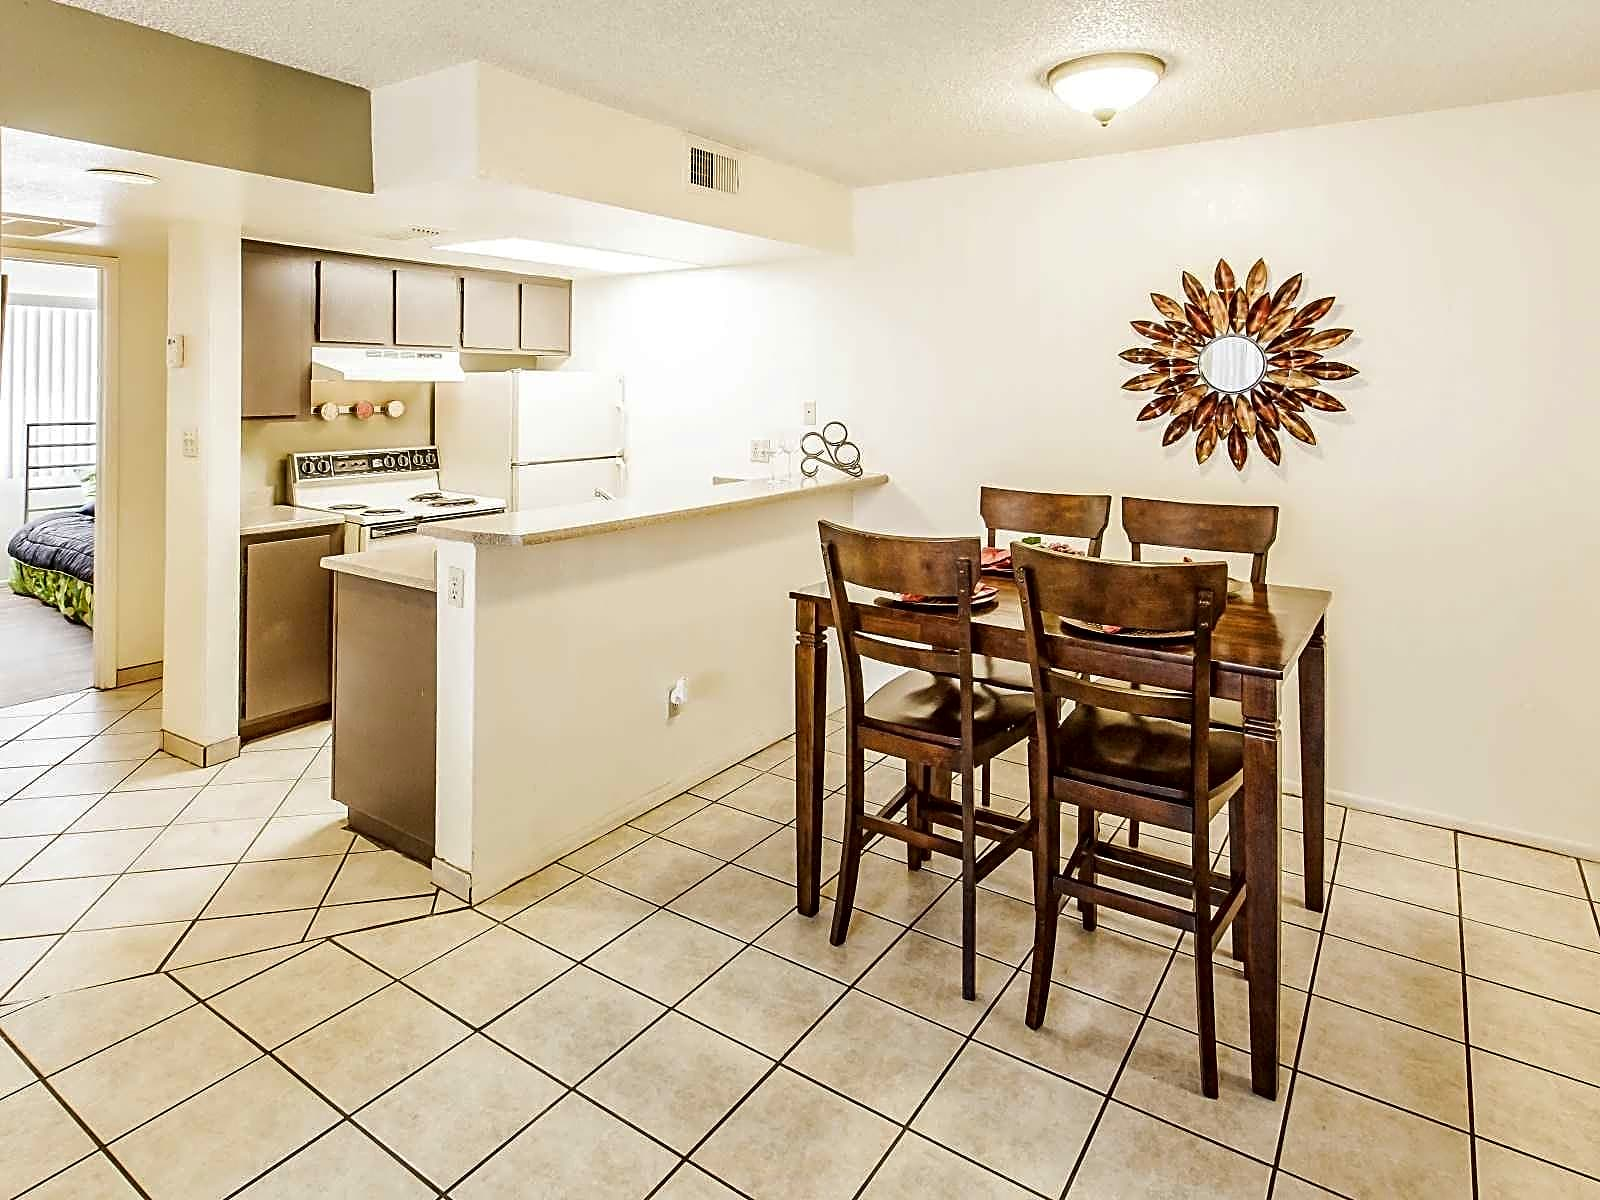 Photo: Phoenix Apartment for Rent - $525.00 / month; 2 Bd & 1 Ba